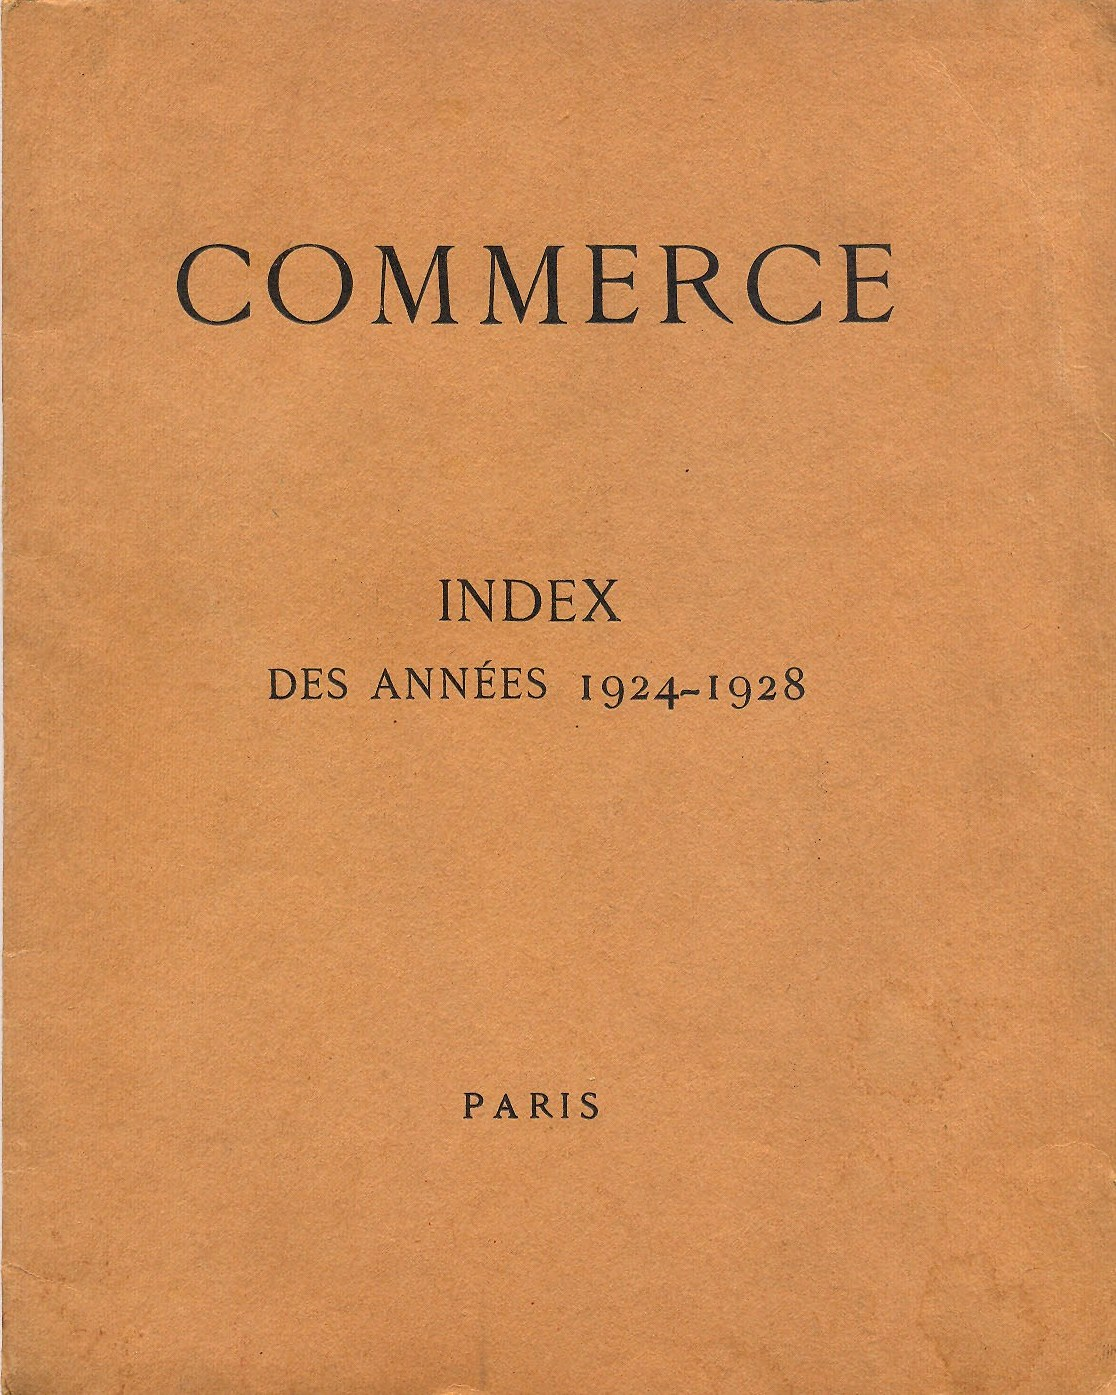 Commerce_Index_1924-28.jpg